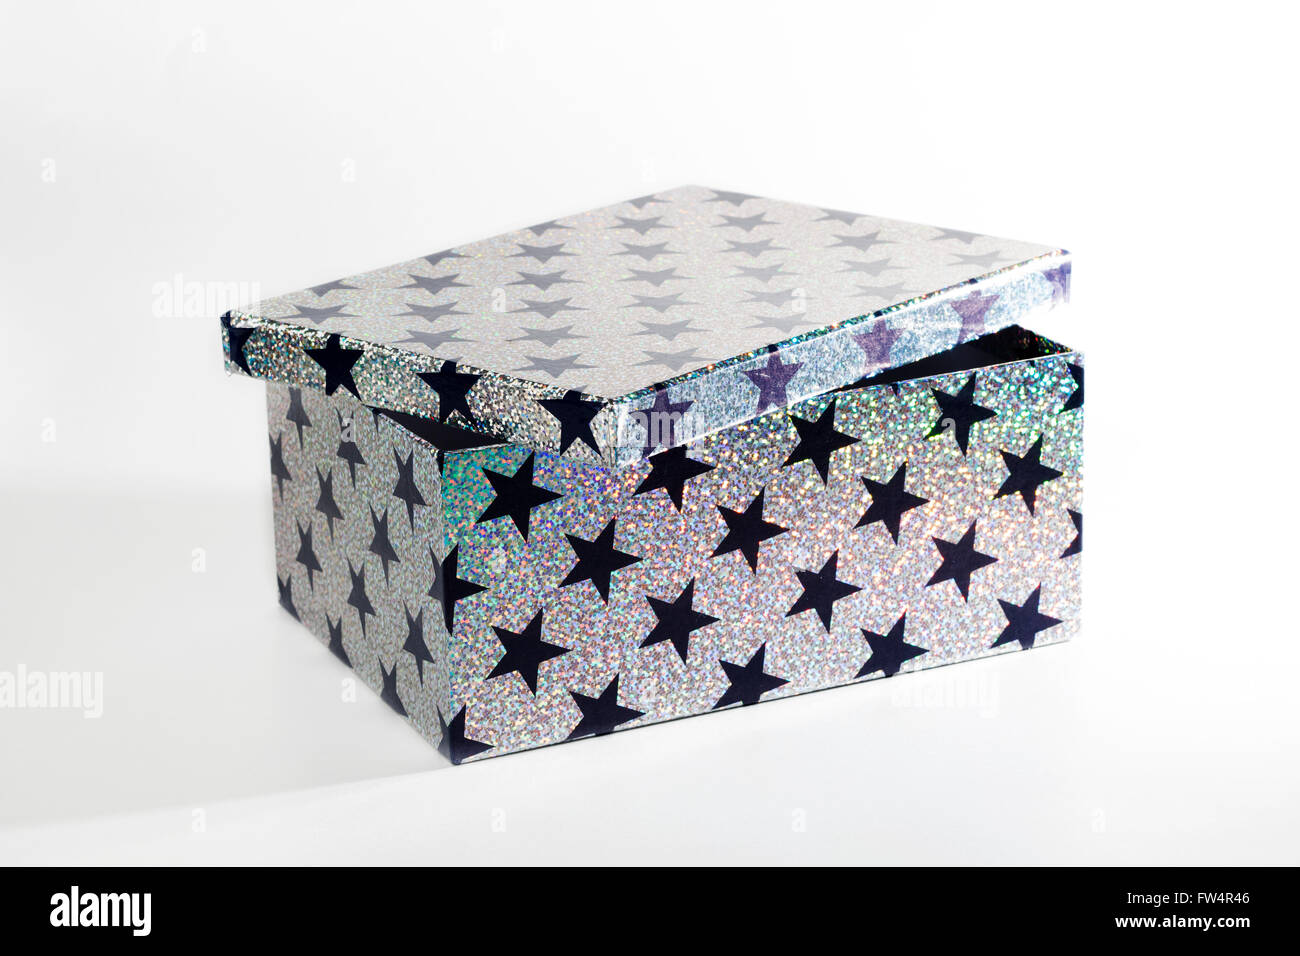 Giftbox with glitters and stars, isolated on white background - Stock Image